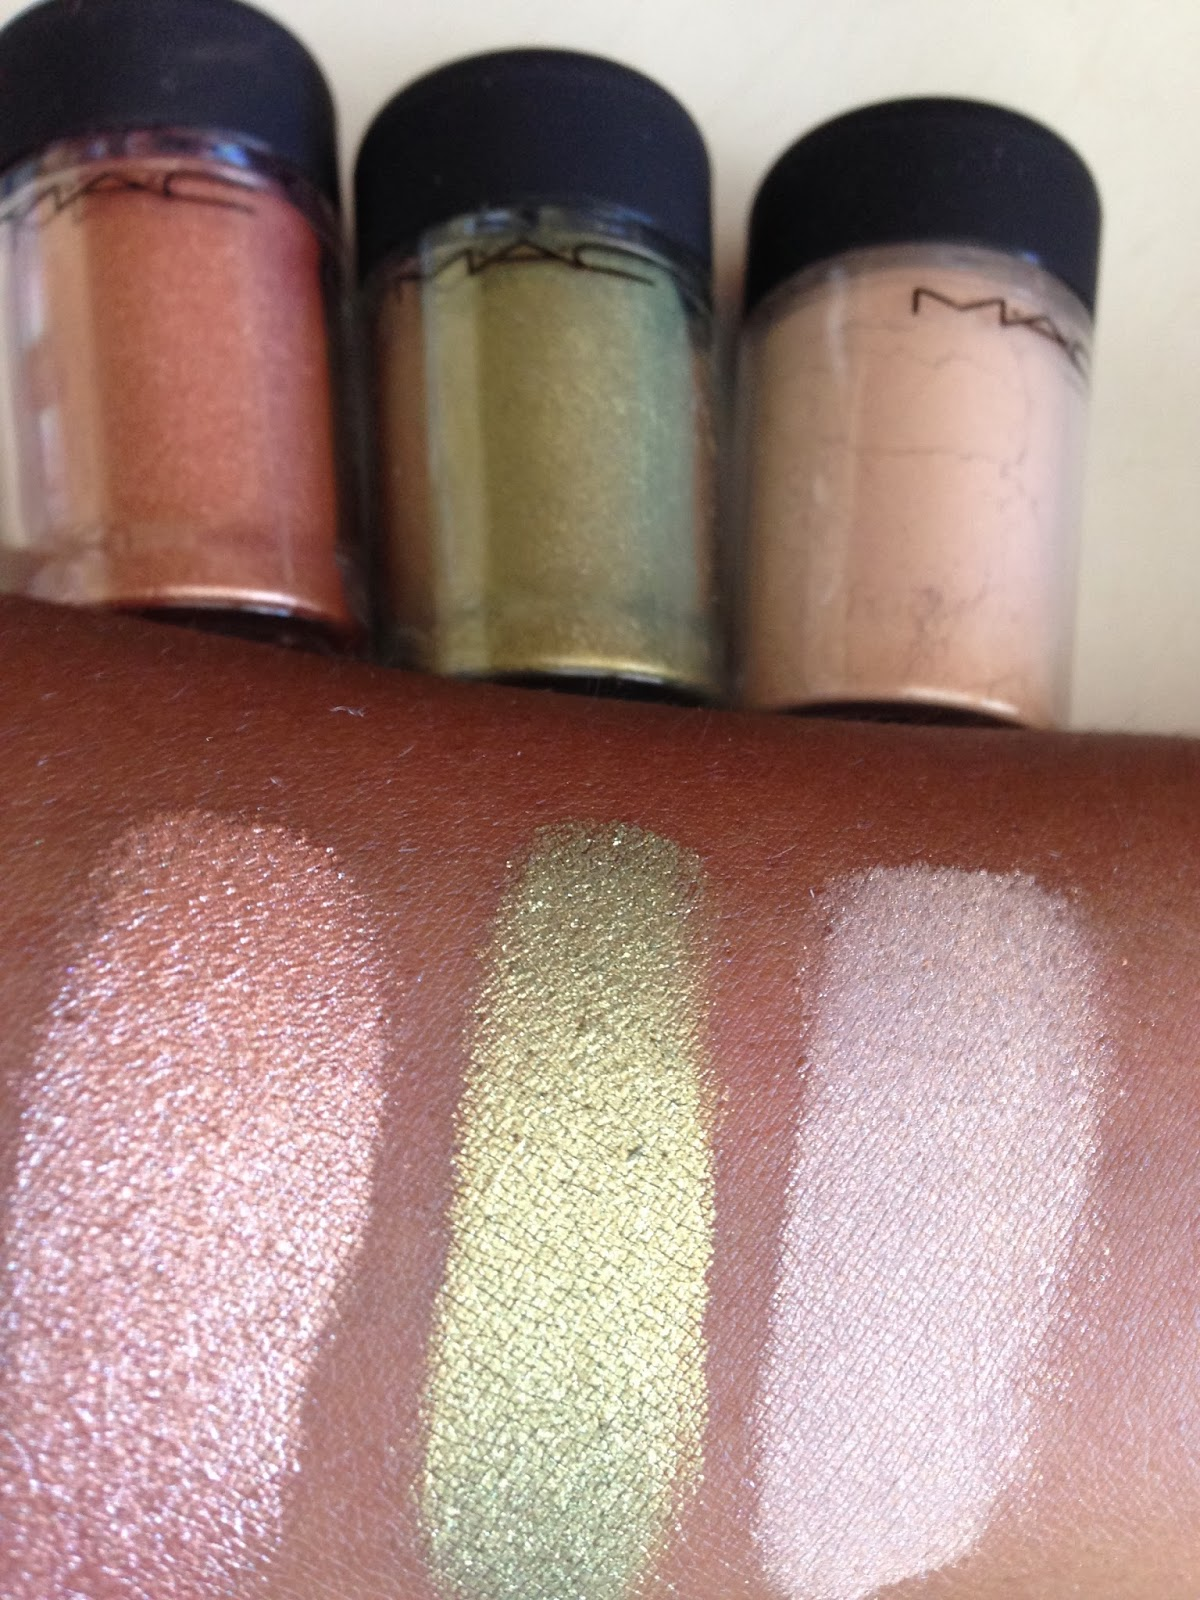 M.A.C 'Naked', 'Golden Olive' and 'Tan' Pigment swatches - www.modenmakeup.com